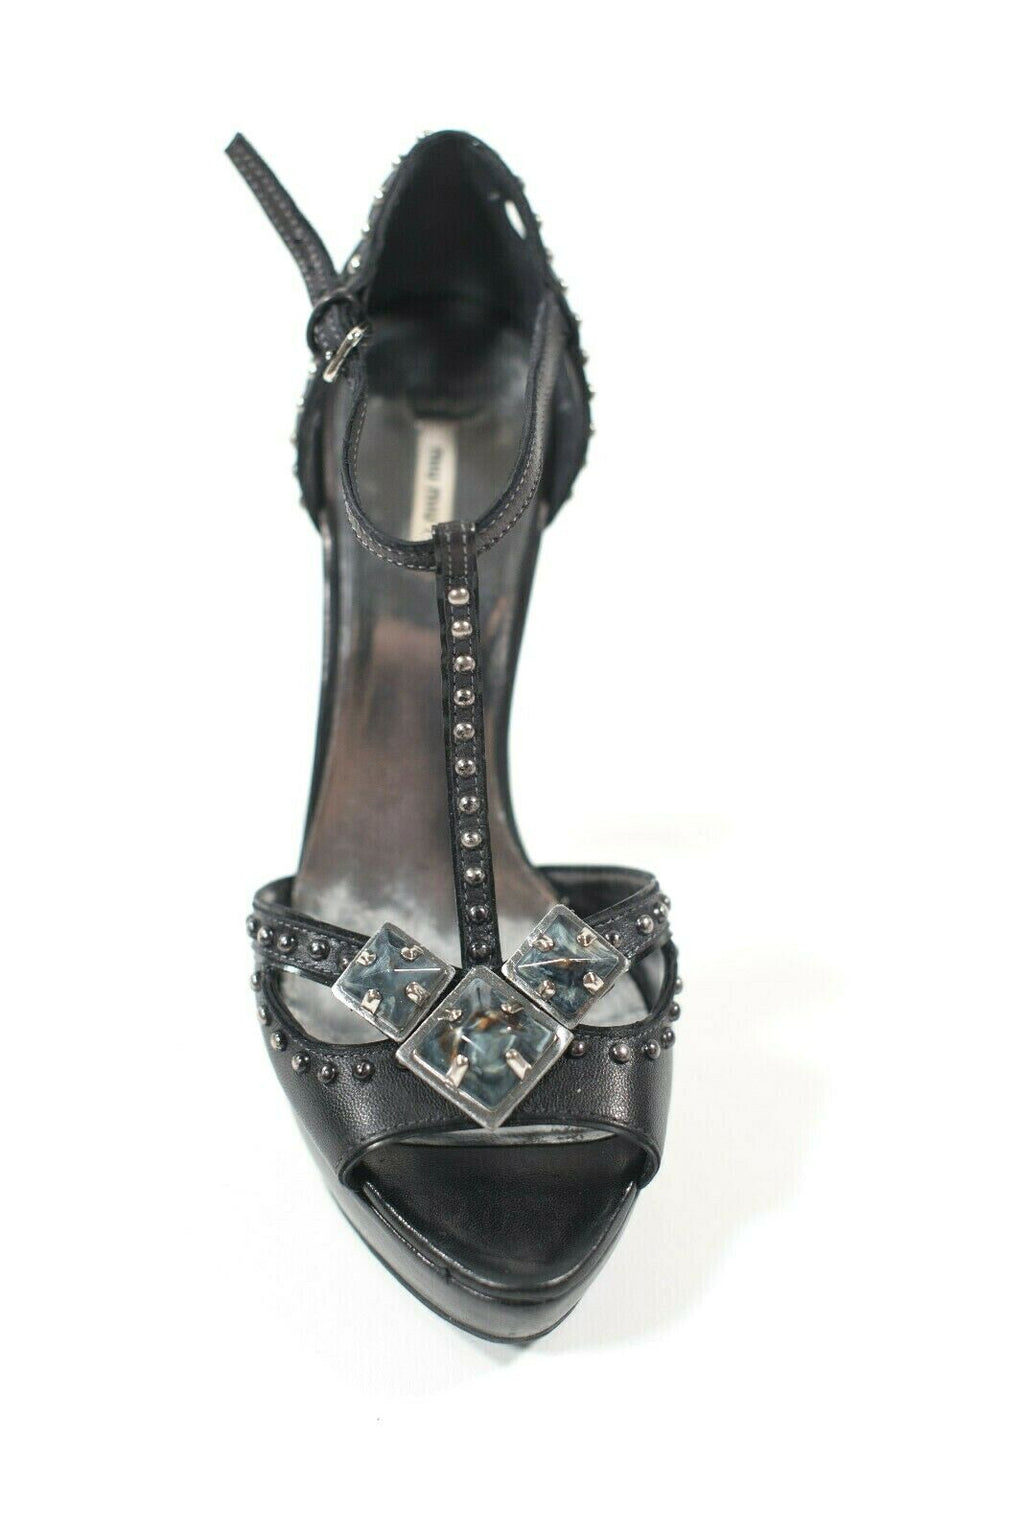 Miu Miu Womens Size 36.5 Black Pumps Beaded Platform Blue Stone Sandal Heels